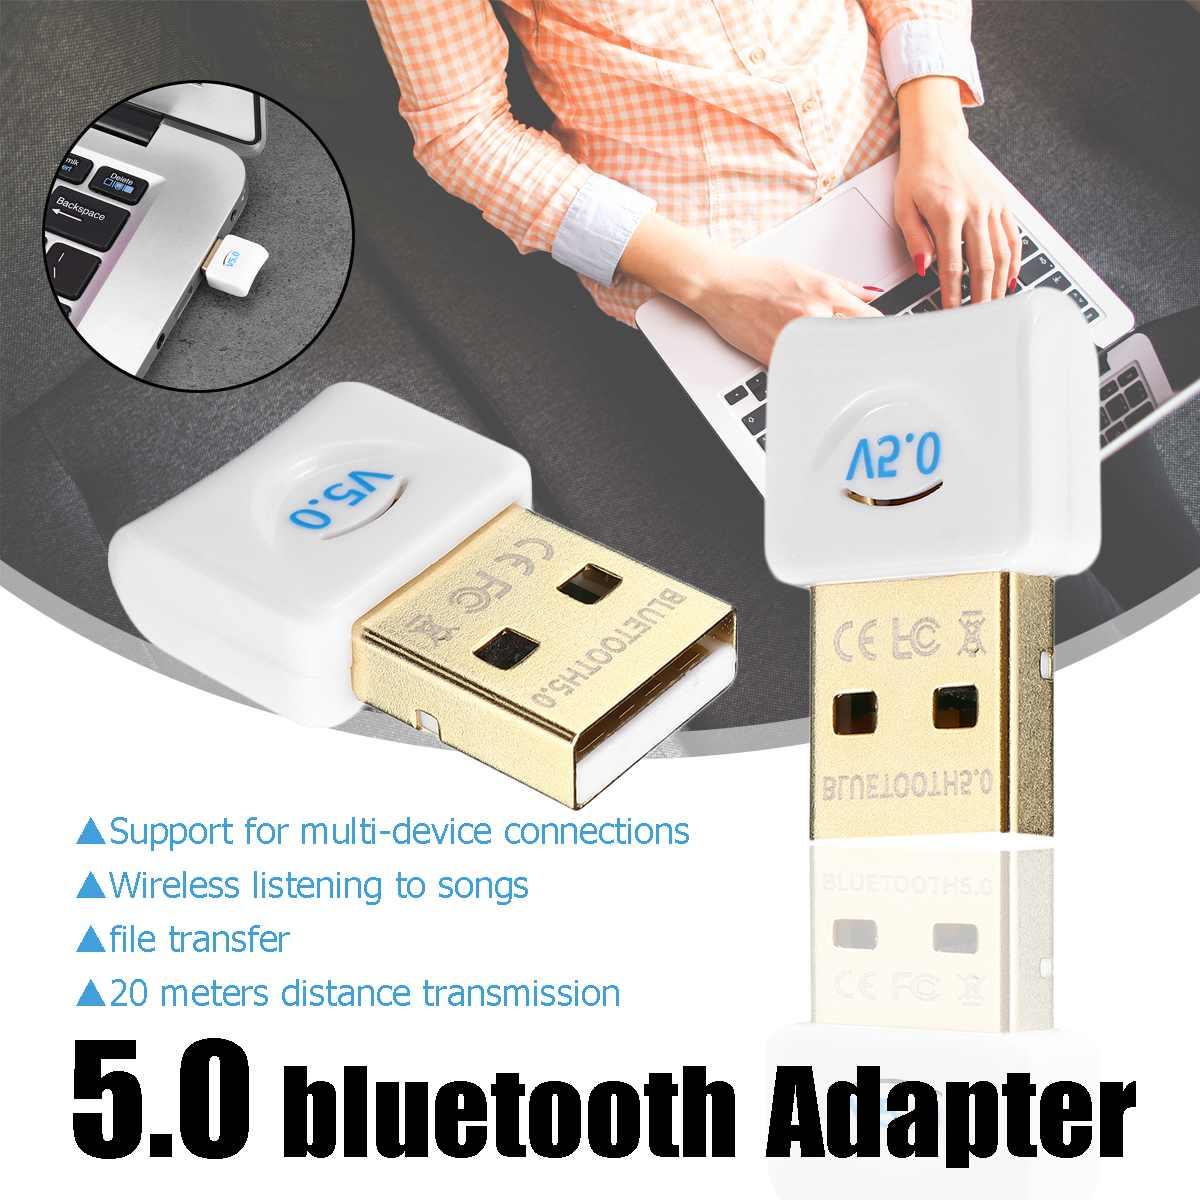 LEORY USB Bluetooth Adapter Dongle For Computer PC Mouse Aux Audio Bluetooth 2.0 3.0 4.0 5.0 Speaker Music Receiver Transmitter